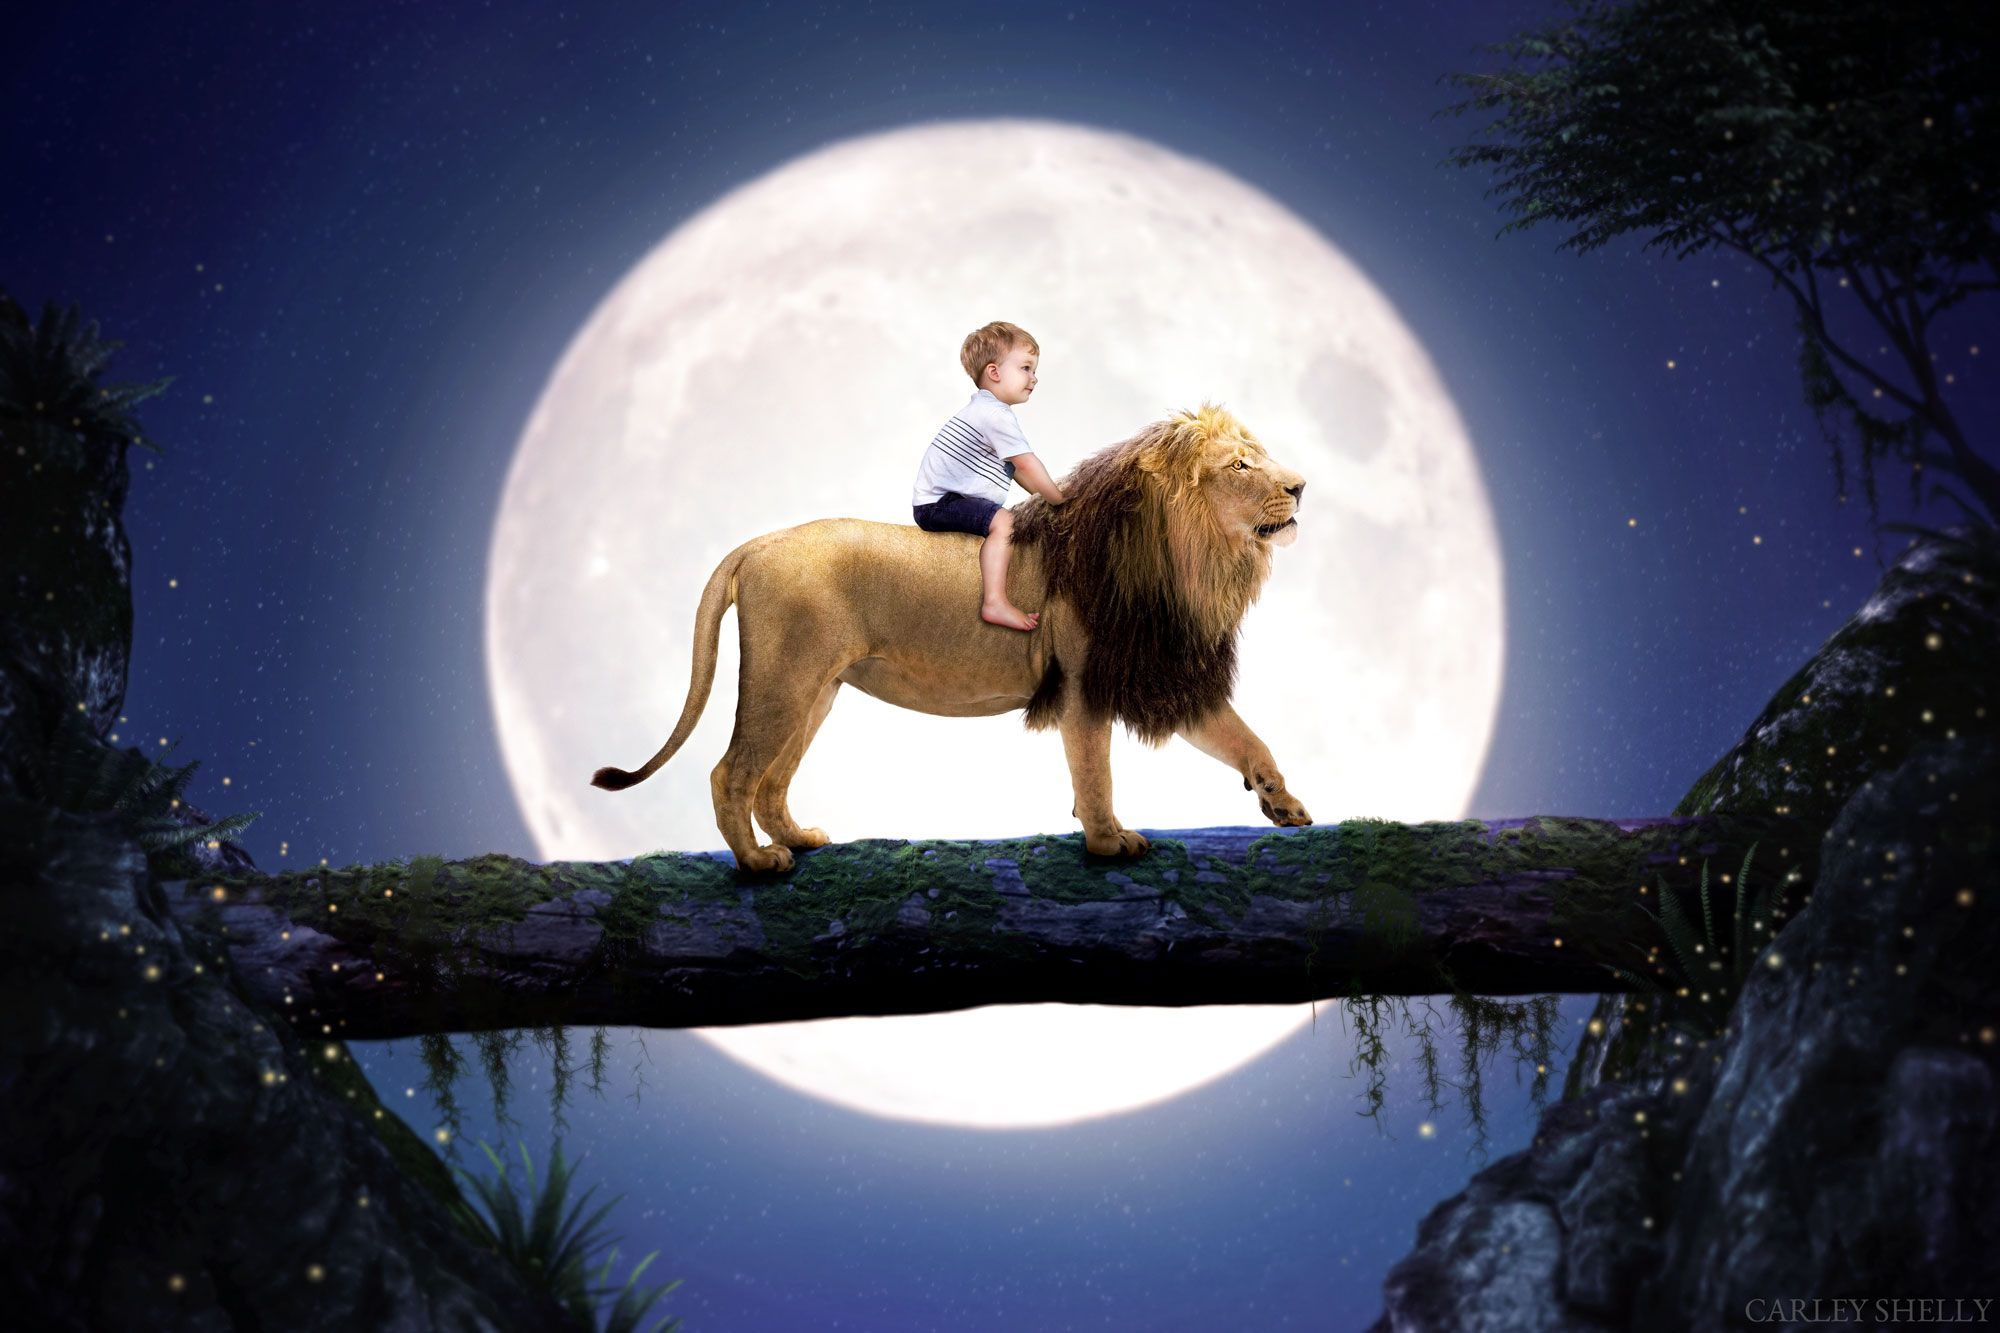 The Most Curious Of Friends By Carley Shelly Photography Boy Riding Lion With Full Moon In The Background Magical Theme D Digital Art Art Magical